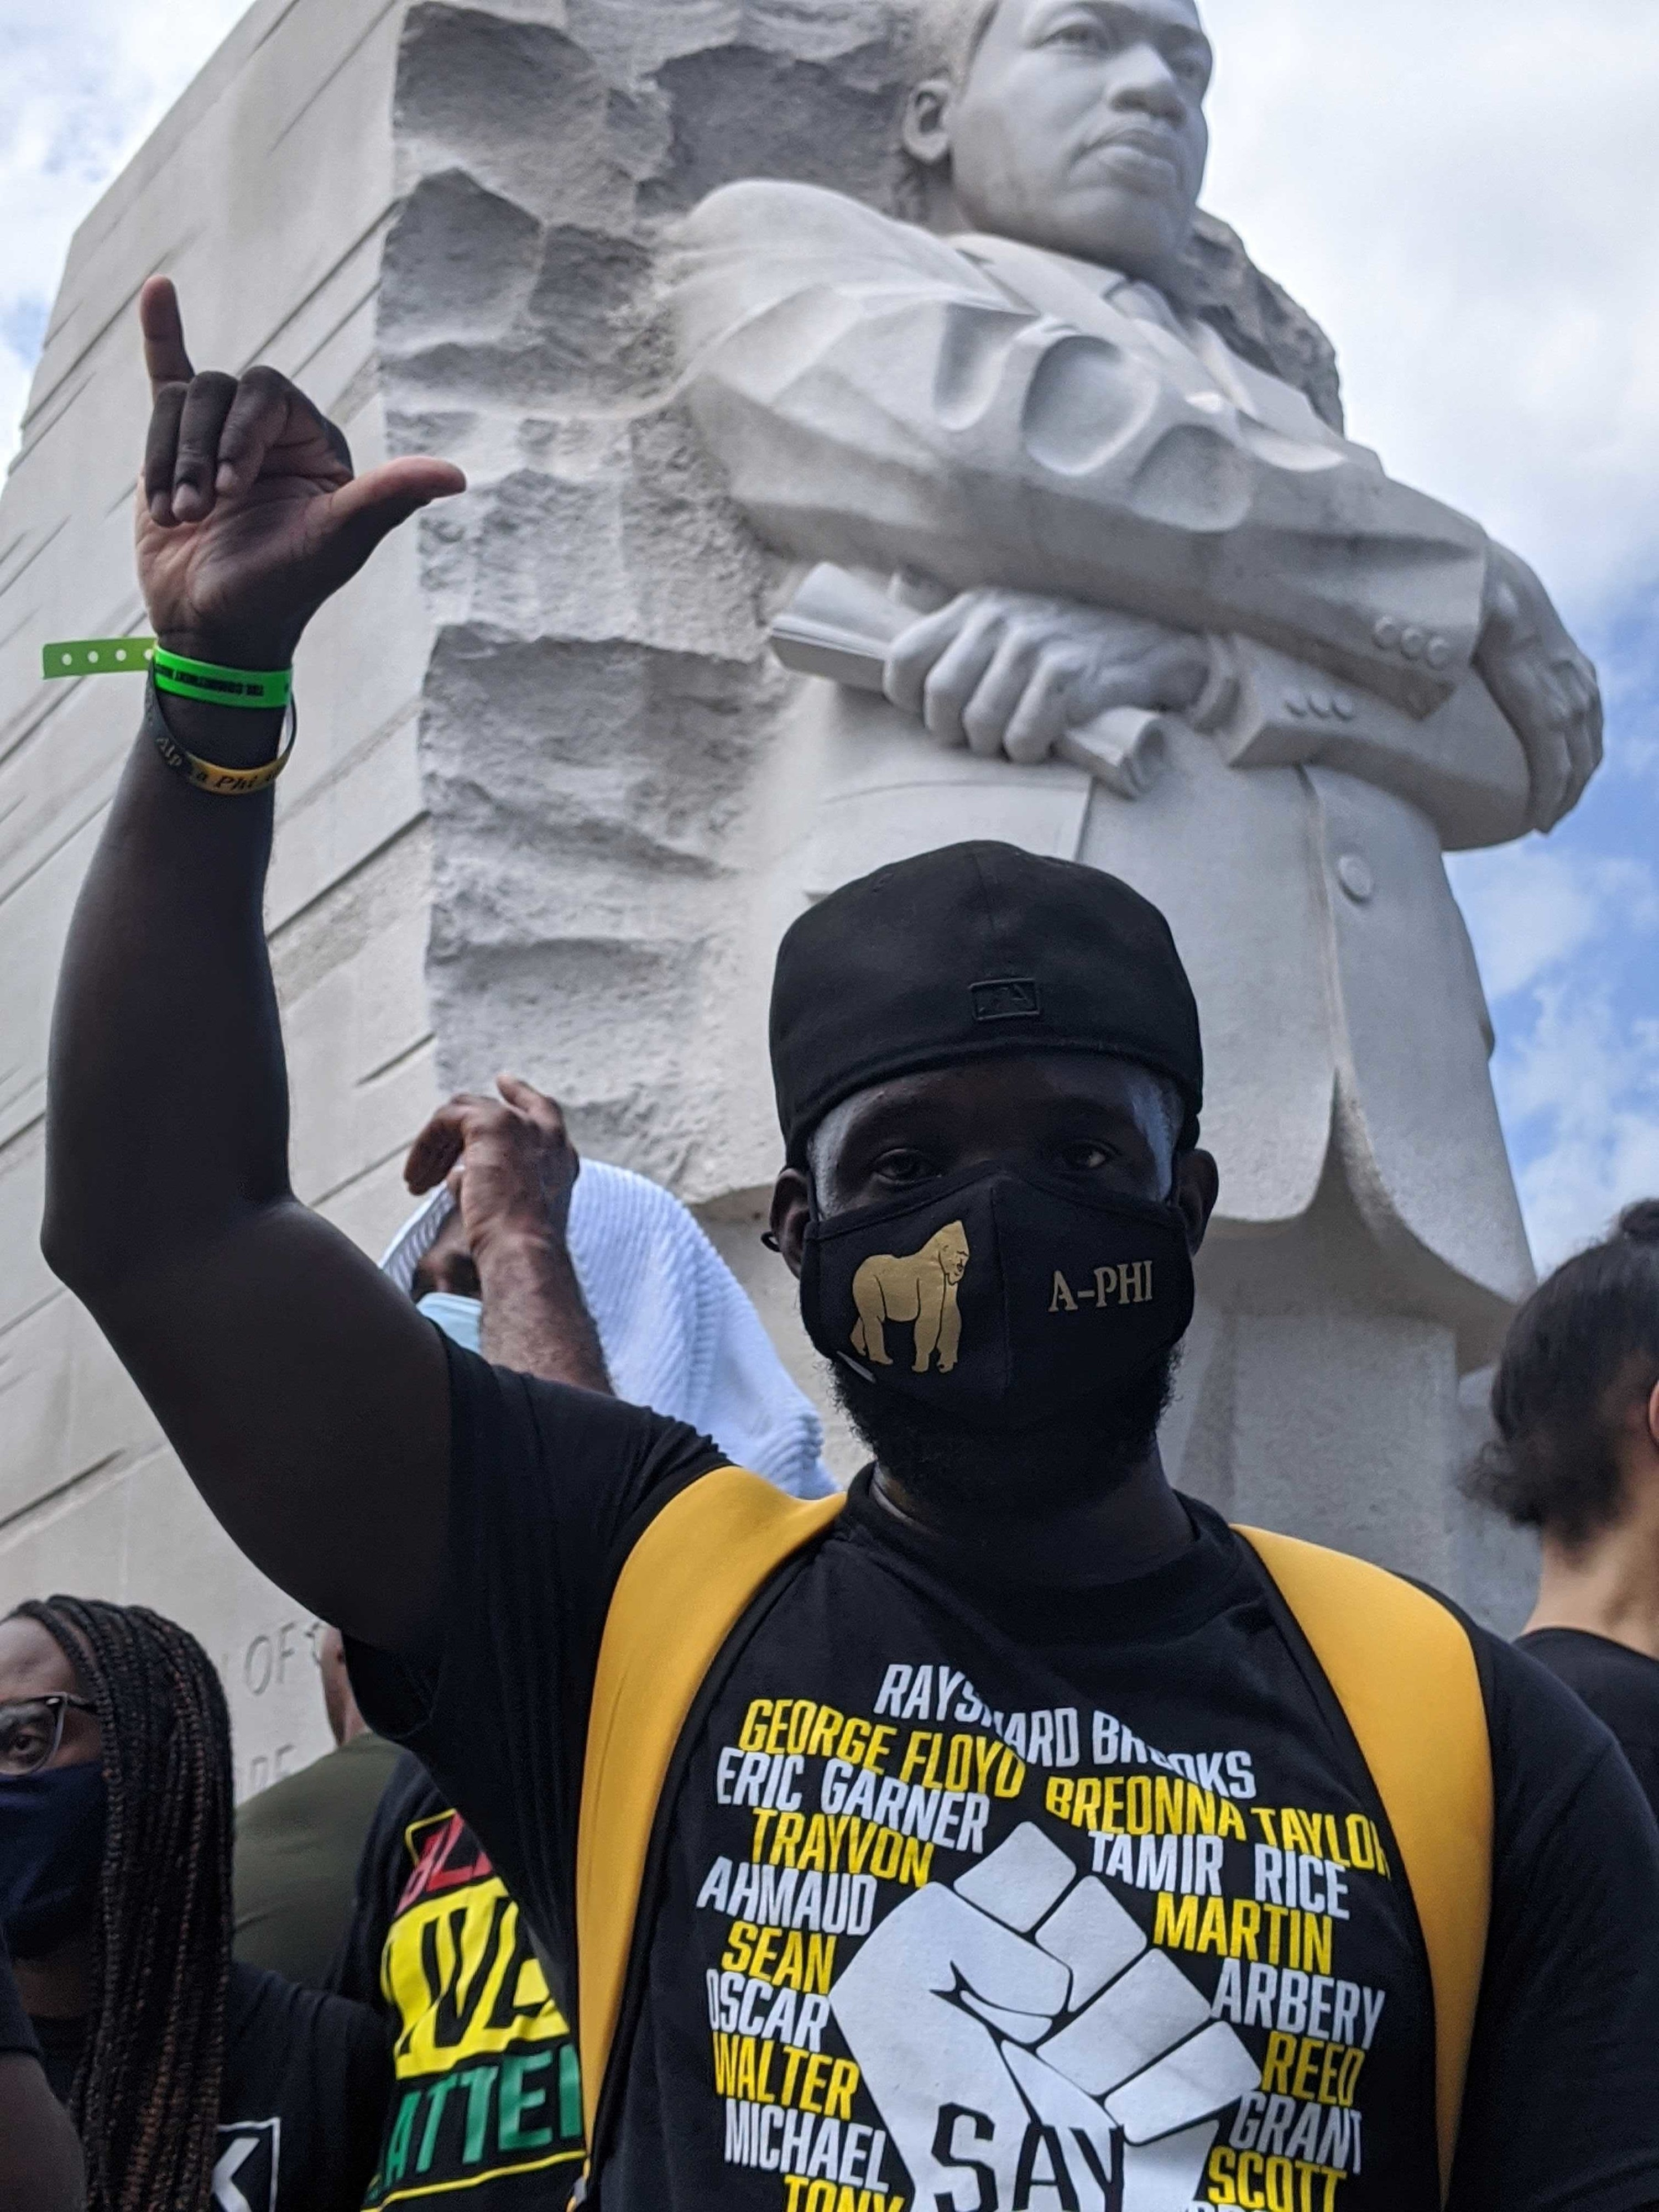 A man stands giving a hang loose sign with his hand in front of the Martin Luther King Jr memorial